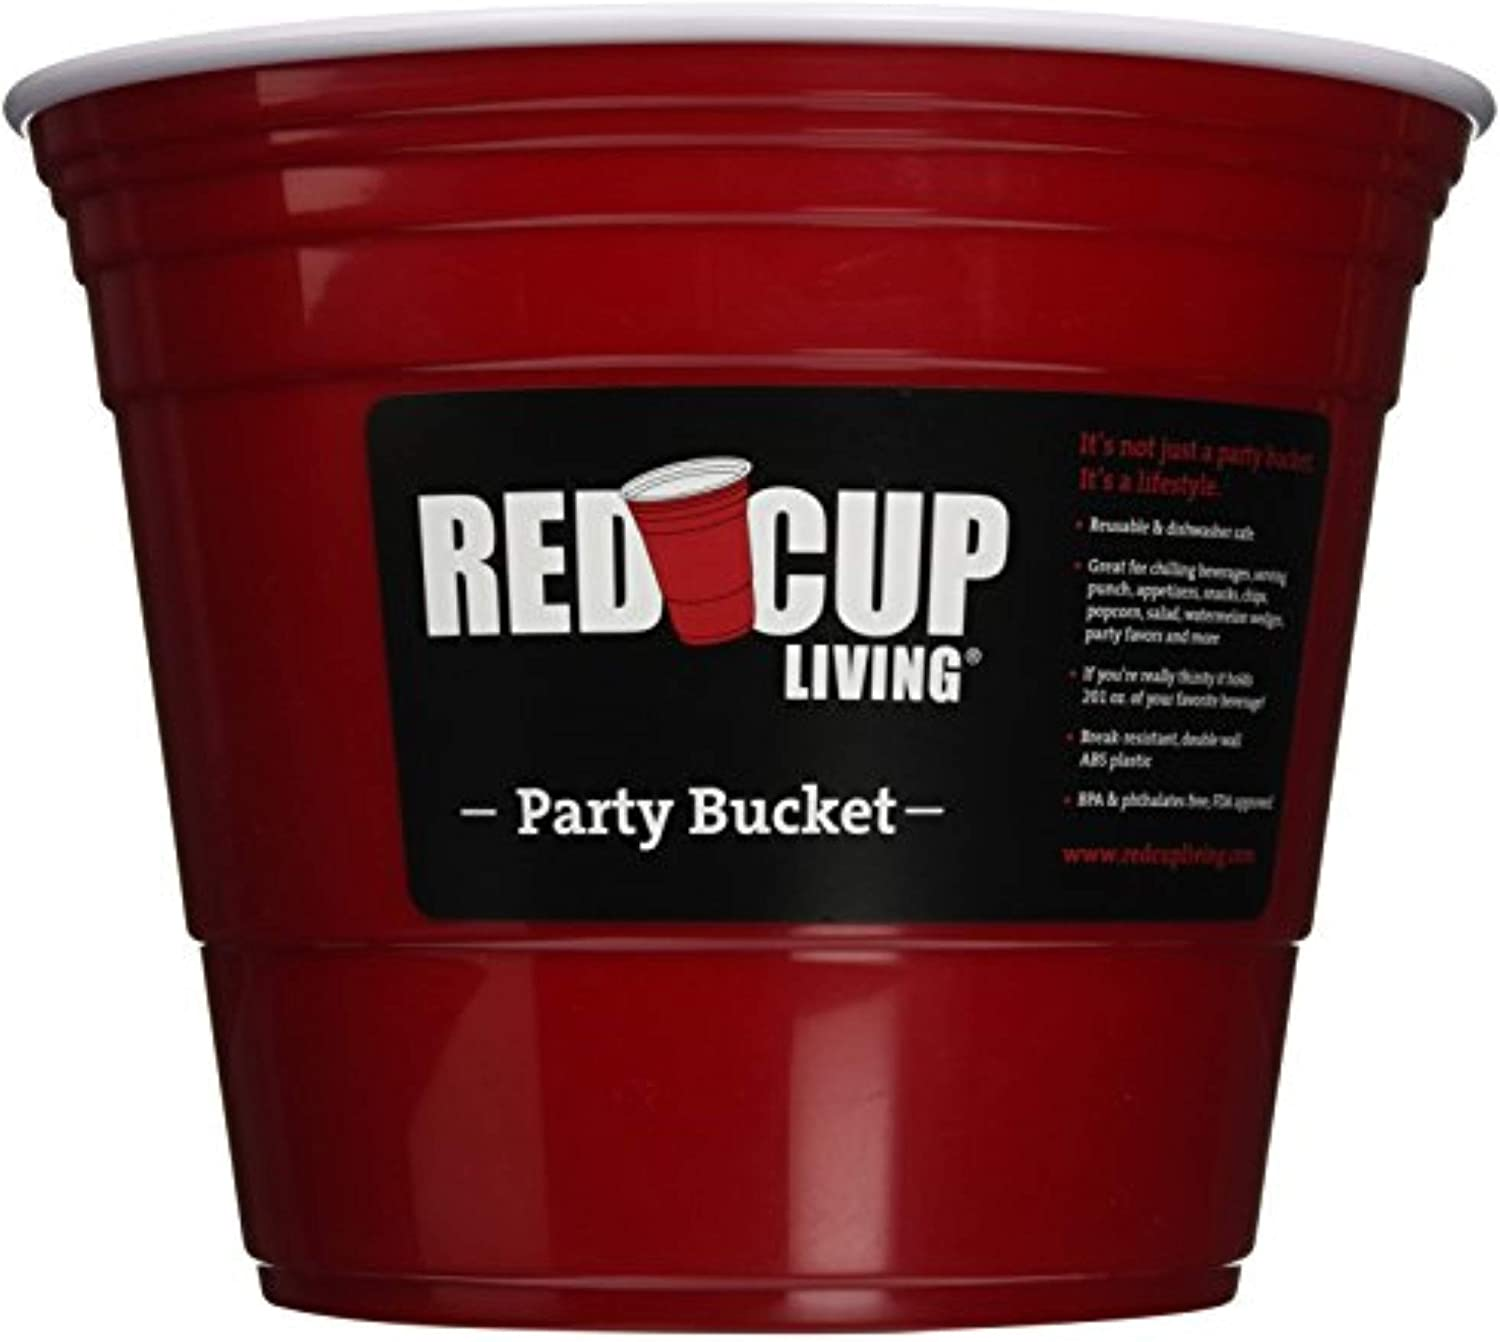 Red Cup Living Reusable Party Bucket, 10 x 8 inches – Party Ice Bucket, Beer Bottle Drink Cooler, Party Beverage Chiller Bin - Ice Bucket Holder.